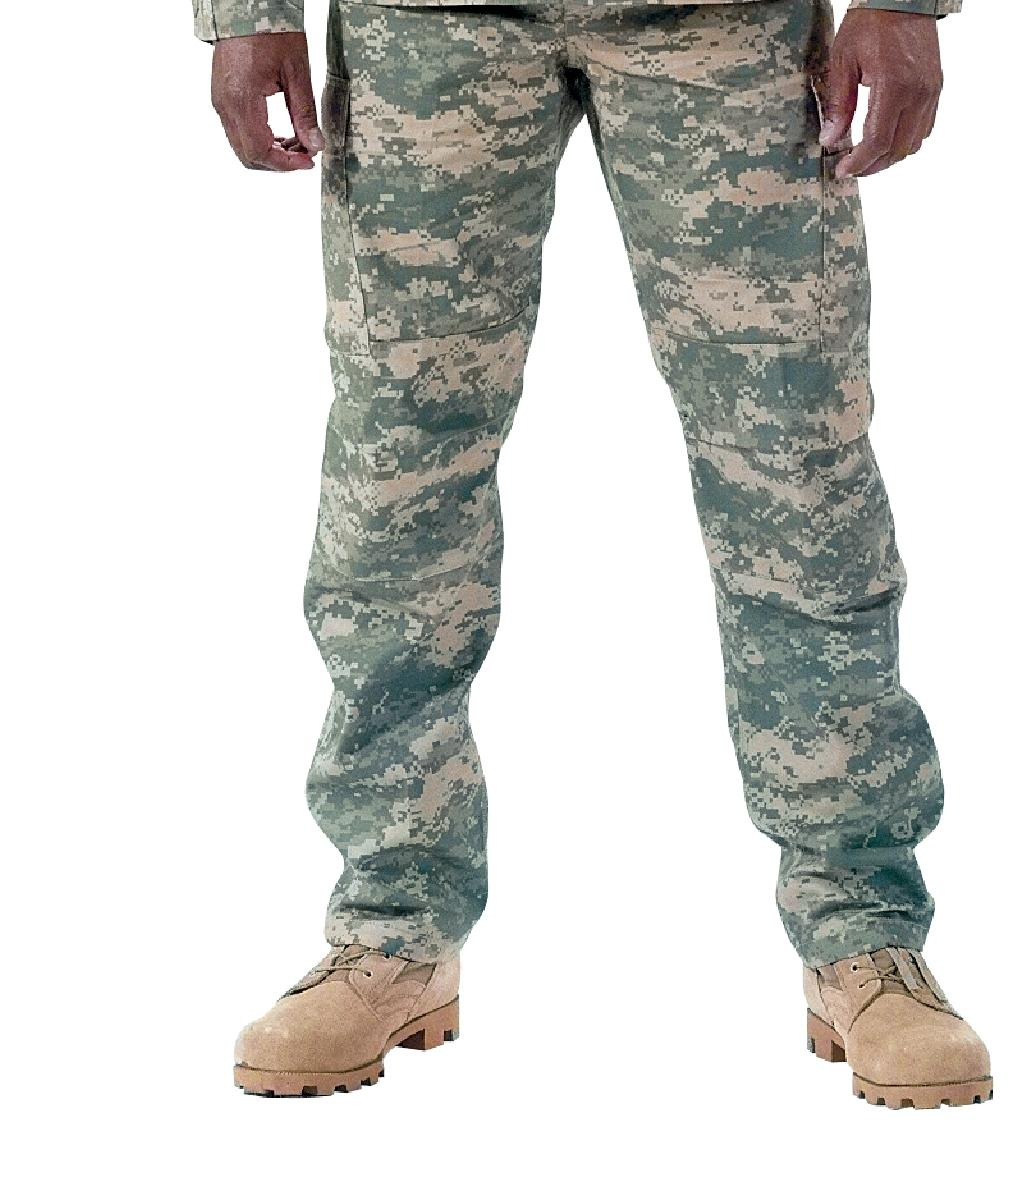 Army Digital Camo BDU Pants, Military Fatigues, ACU by Rothco